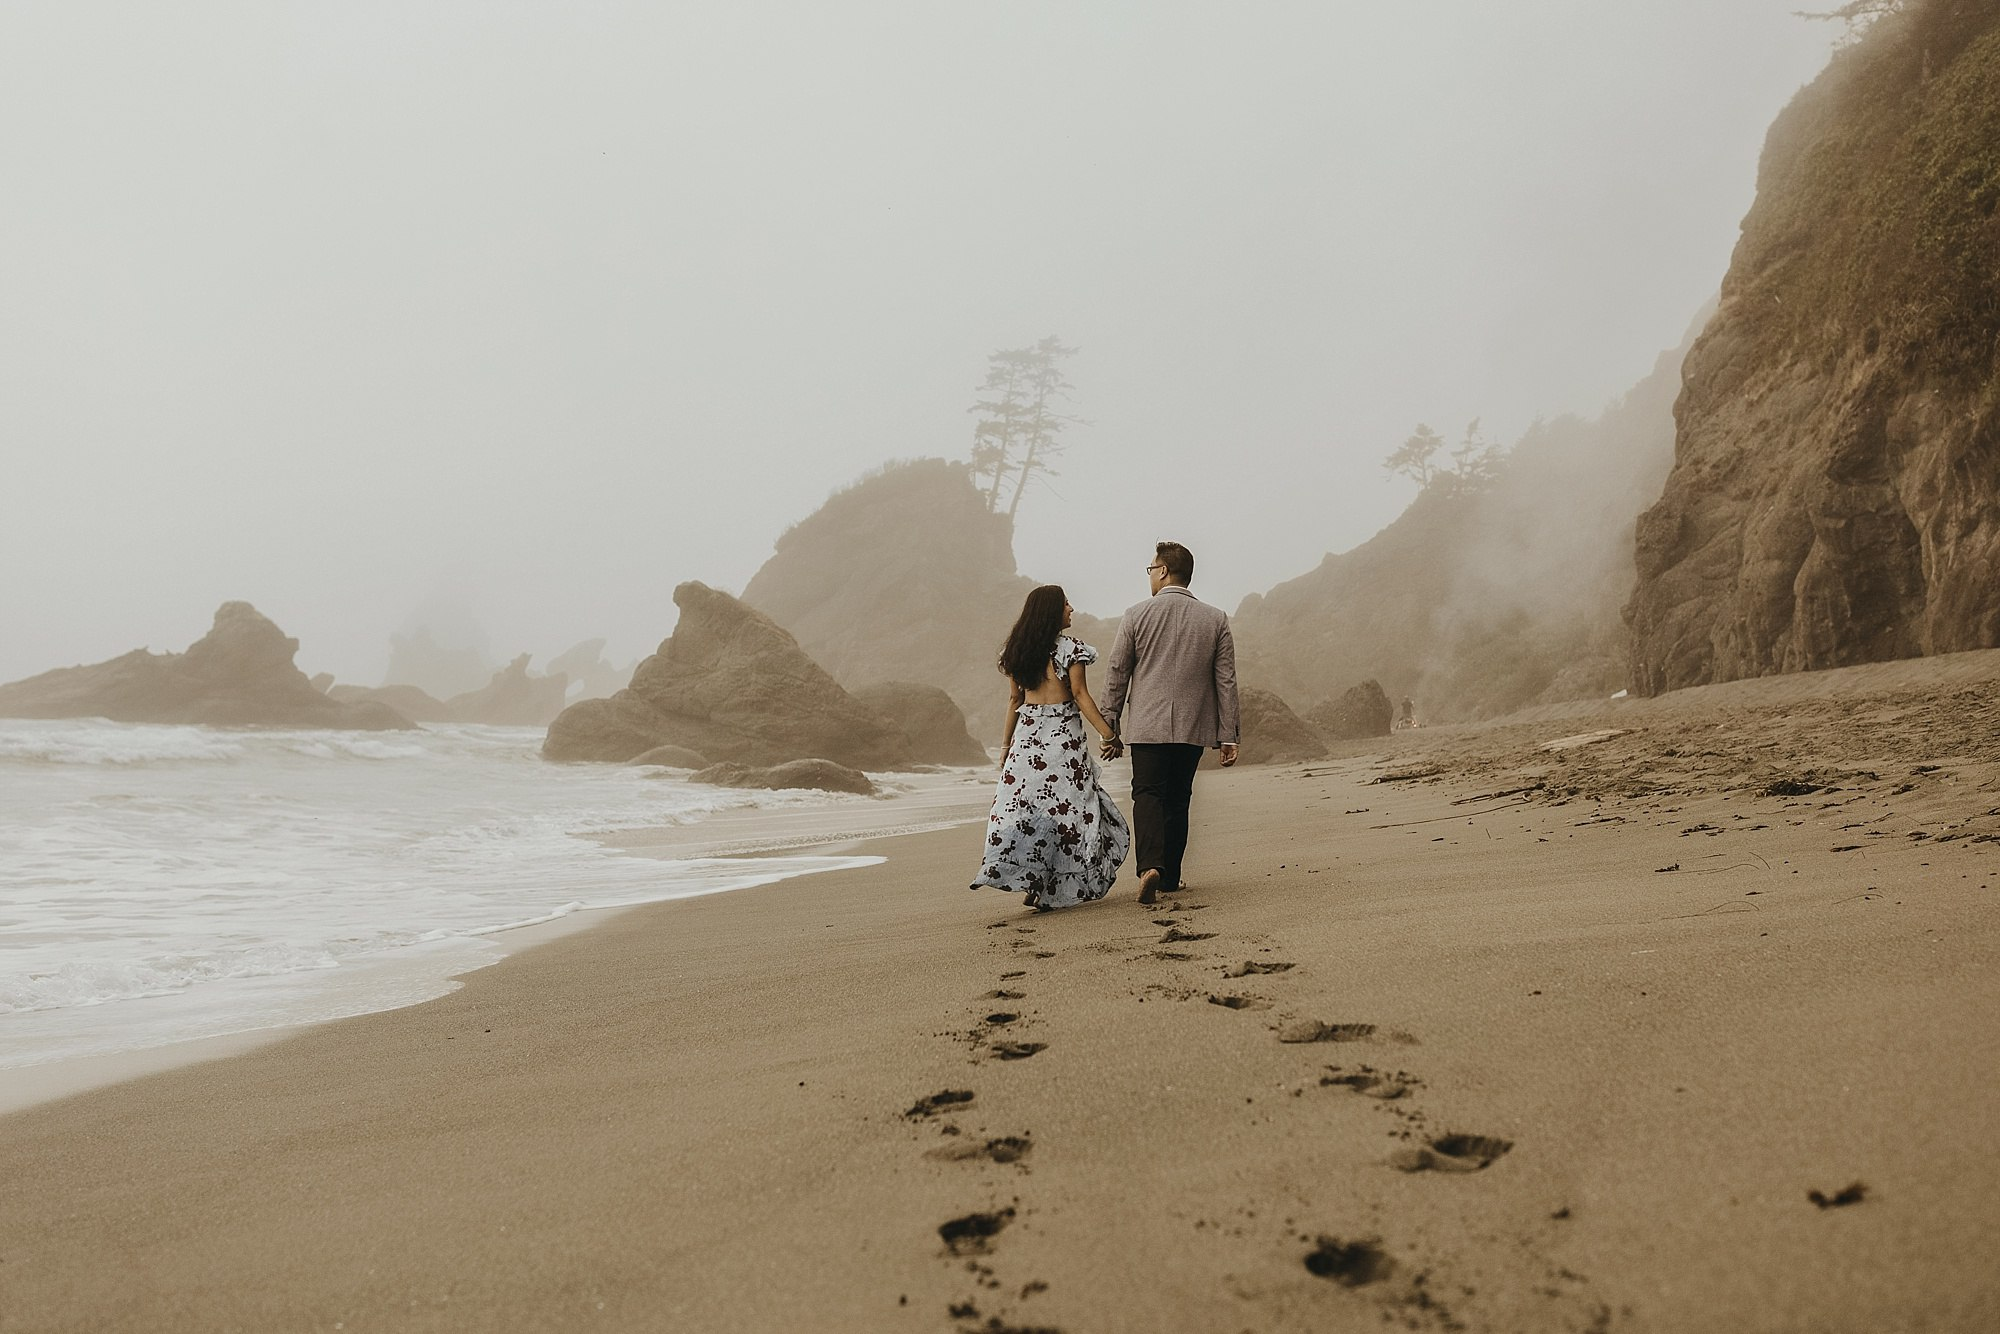 shi shi beach engagement shoot in olympic national park honey preset by India earl